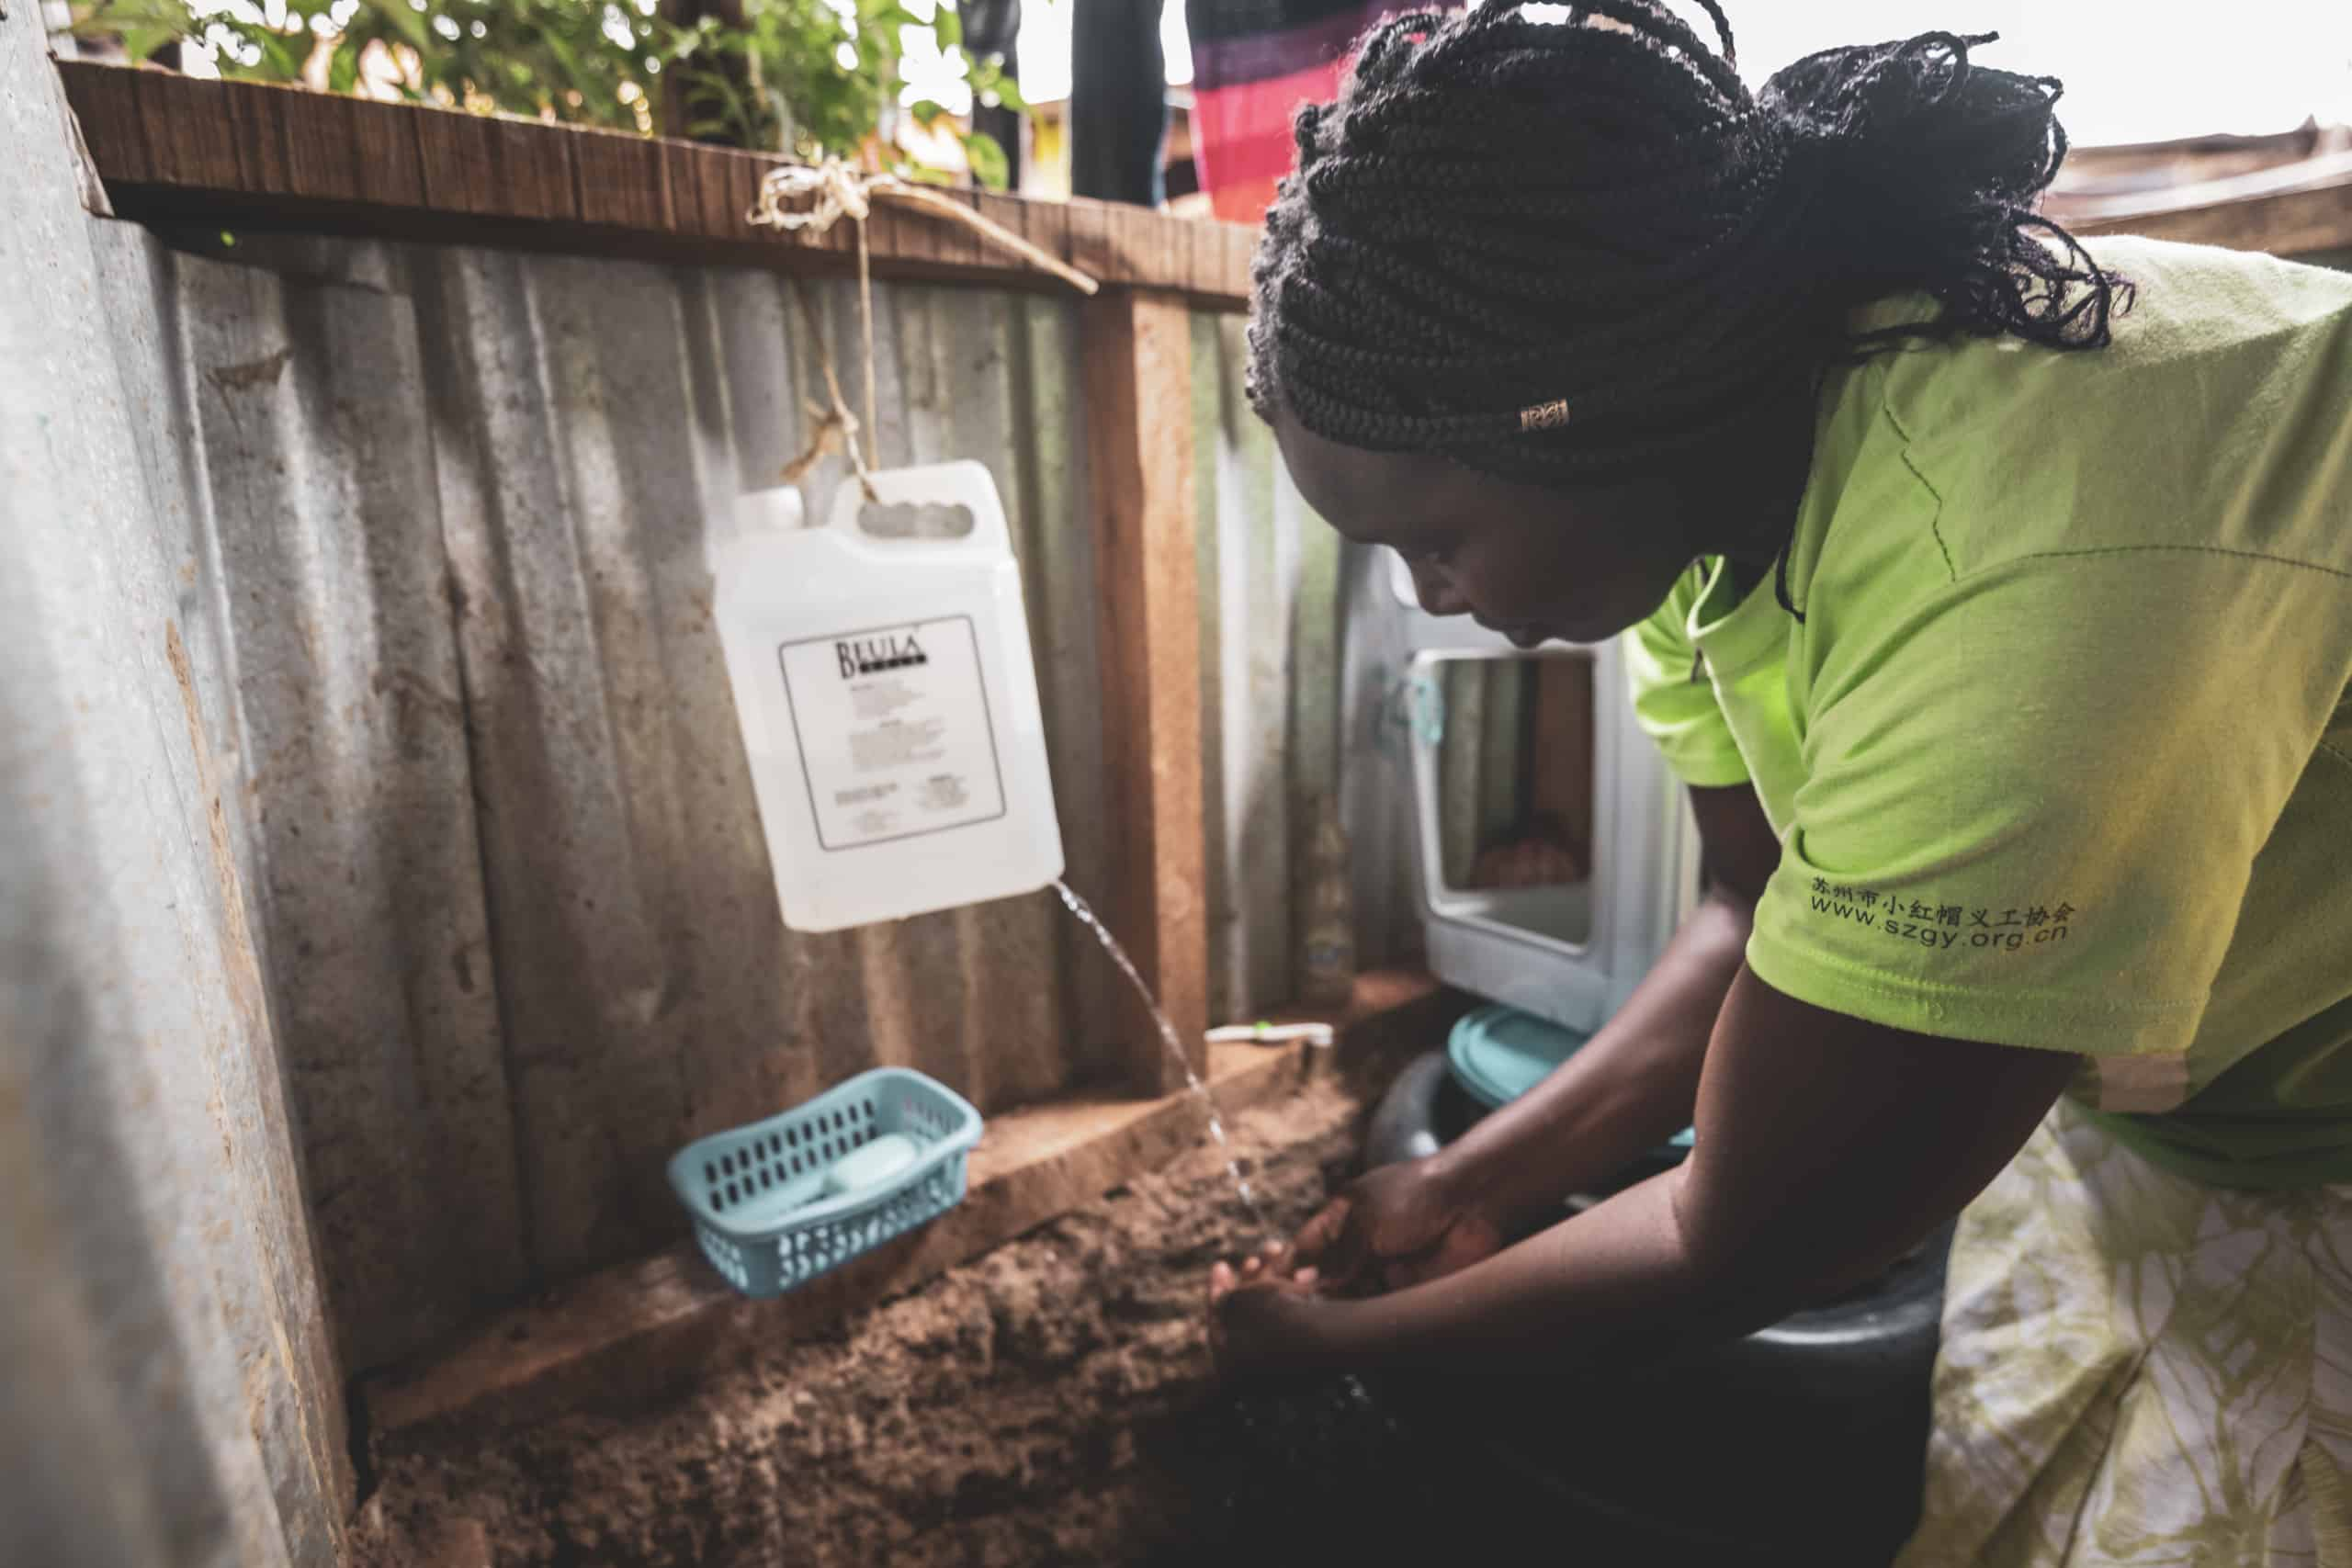 A woman washes her hands at a makeshift handwashing station with a water jug.